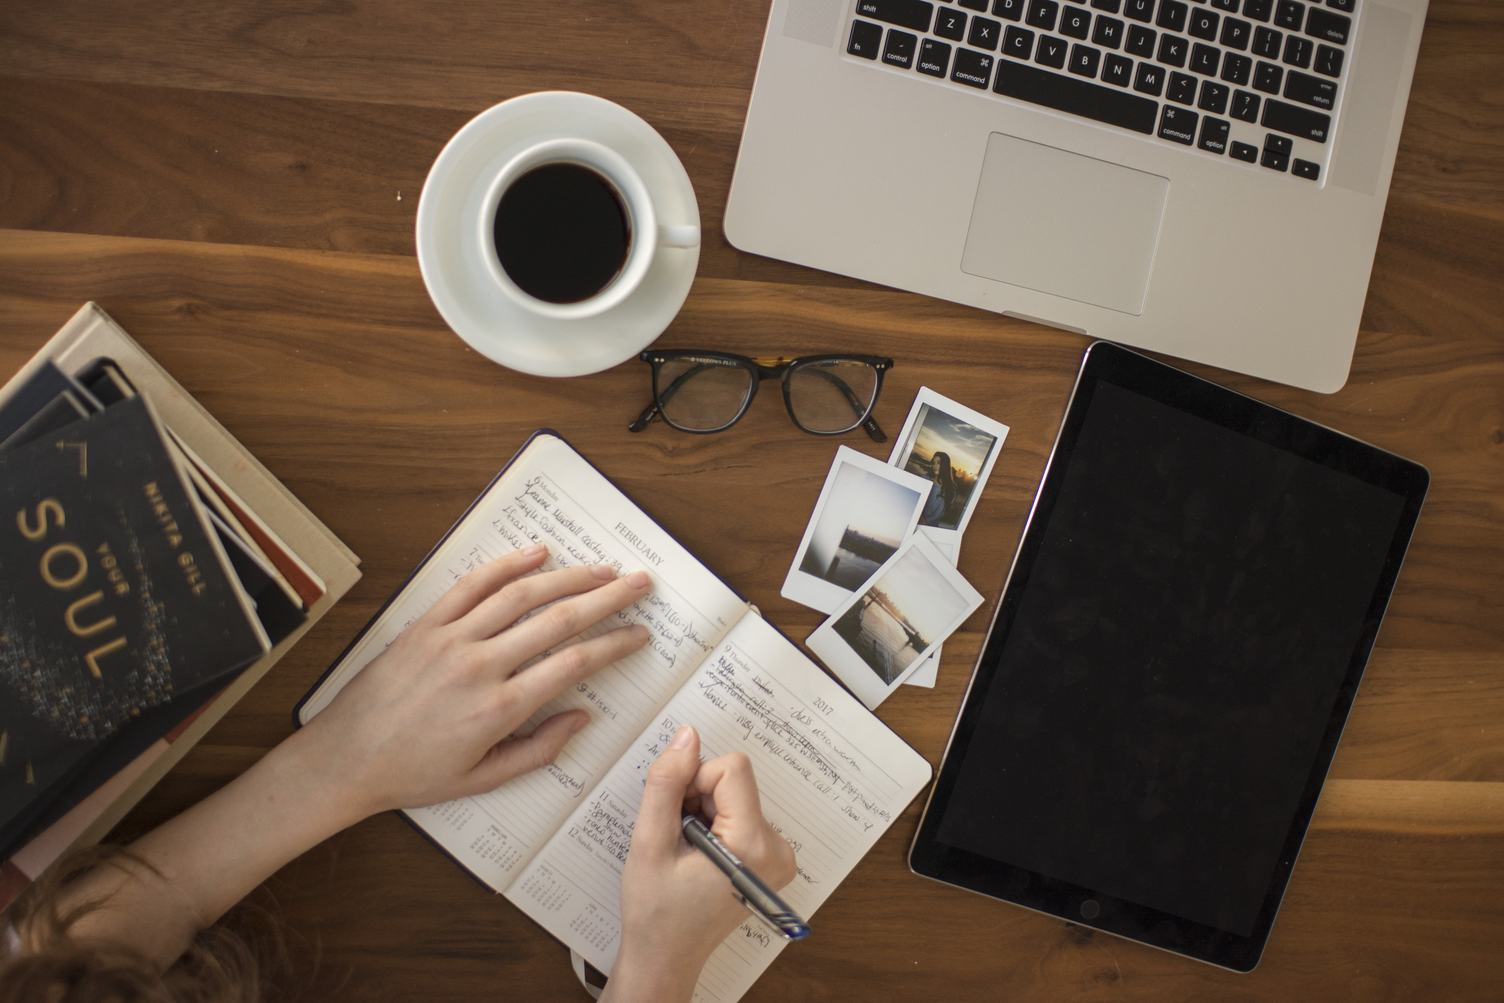 Top View of Hand Writing on a Notebook, with Laptop, Tablet and Hot Coffee